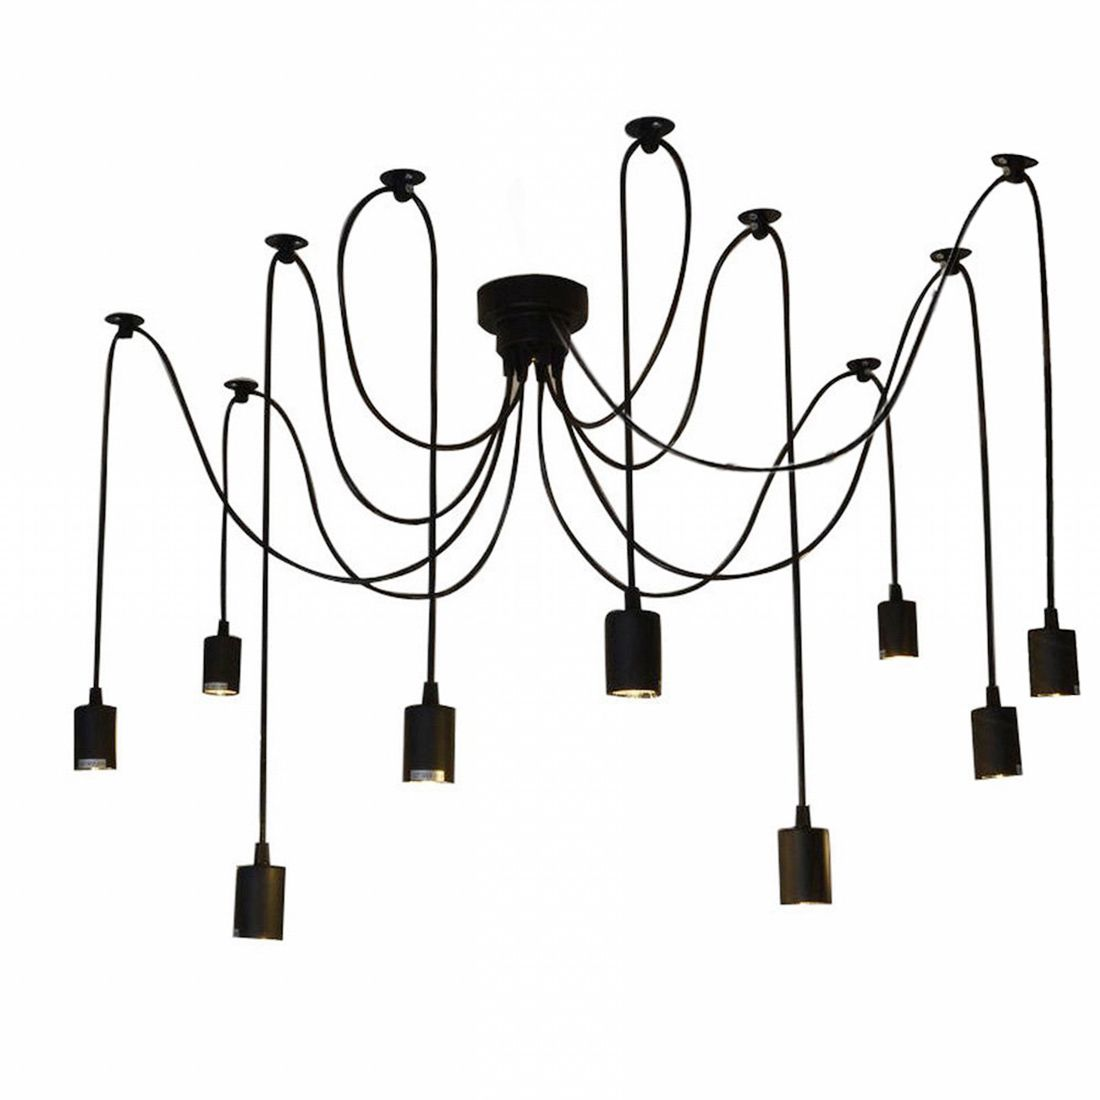 9 Lights E27 DIY Ceiling Spider Pendant Lamp Shade Light Antique Classic Adjustable Retro Chandelier Dining Hall Bedroom Home 10 lights creative fairy vintage edison lamp shade multiple adjustable diy ceiling spider pendent lighting chandelier 10 ligh